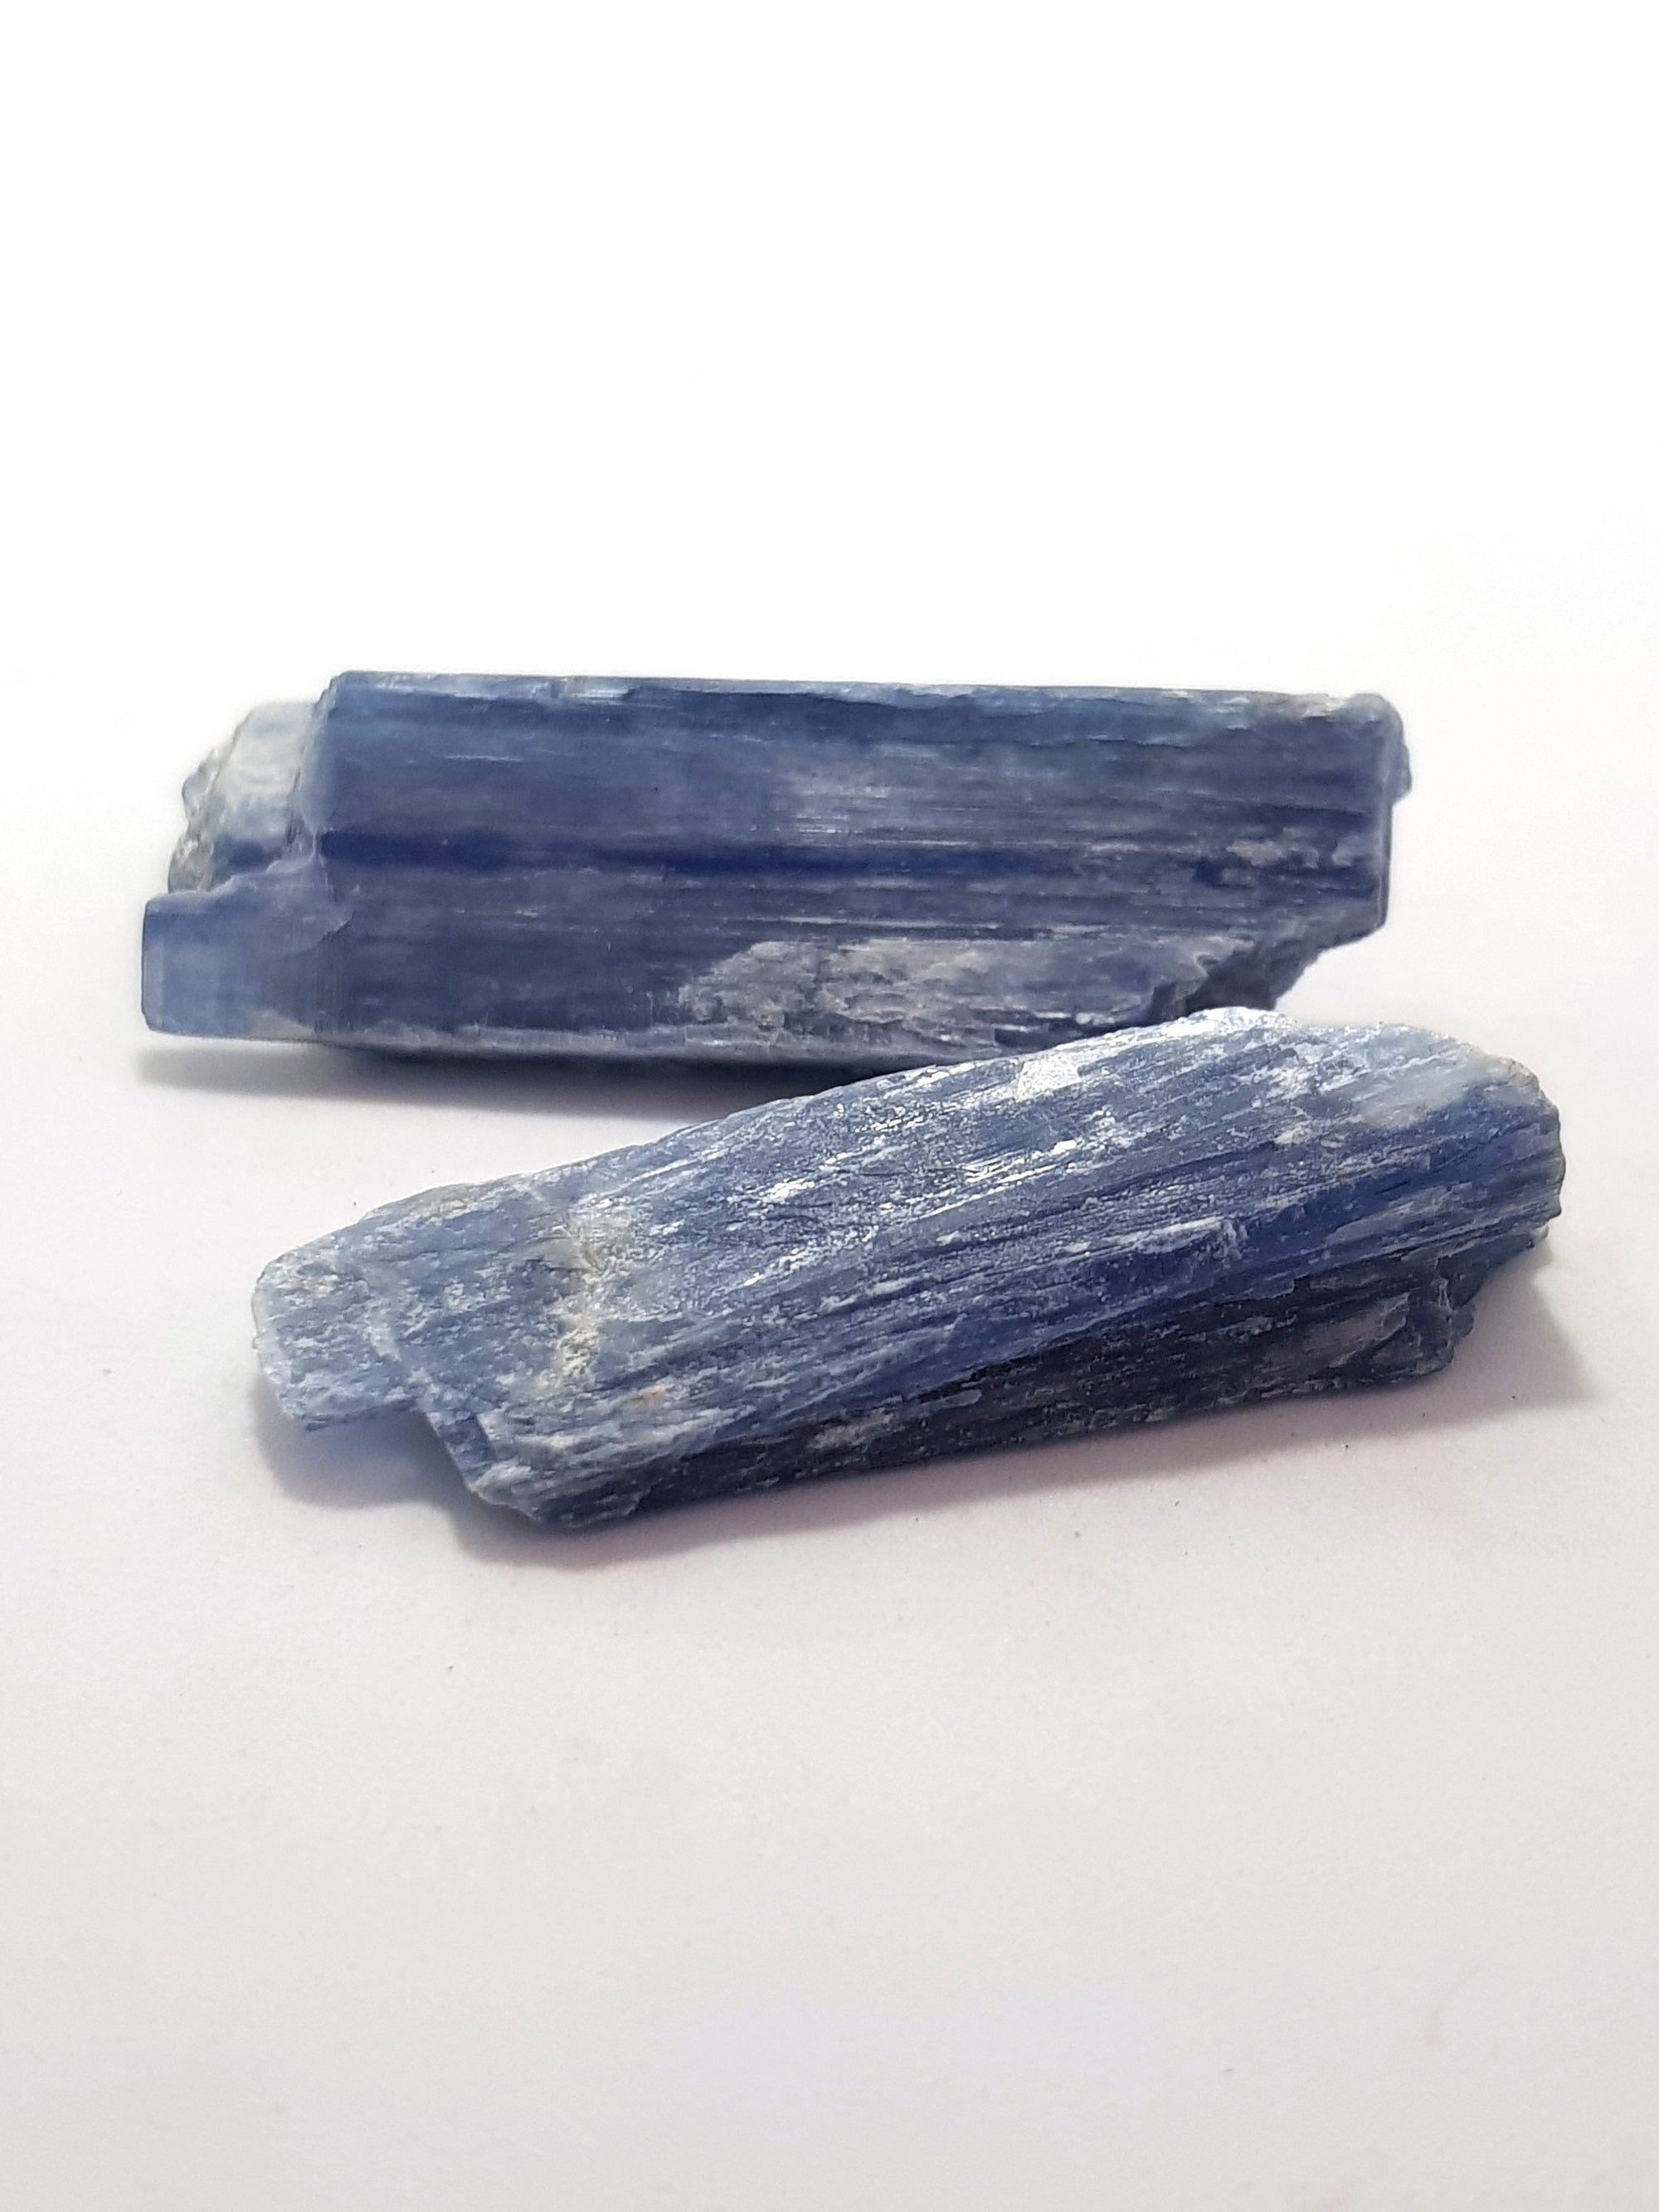 blue kyanite. These have well defined cleavage